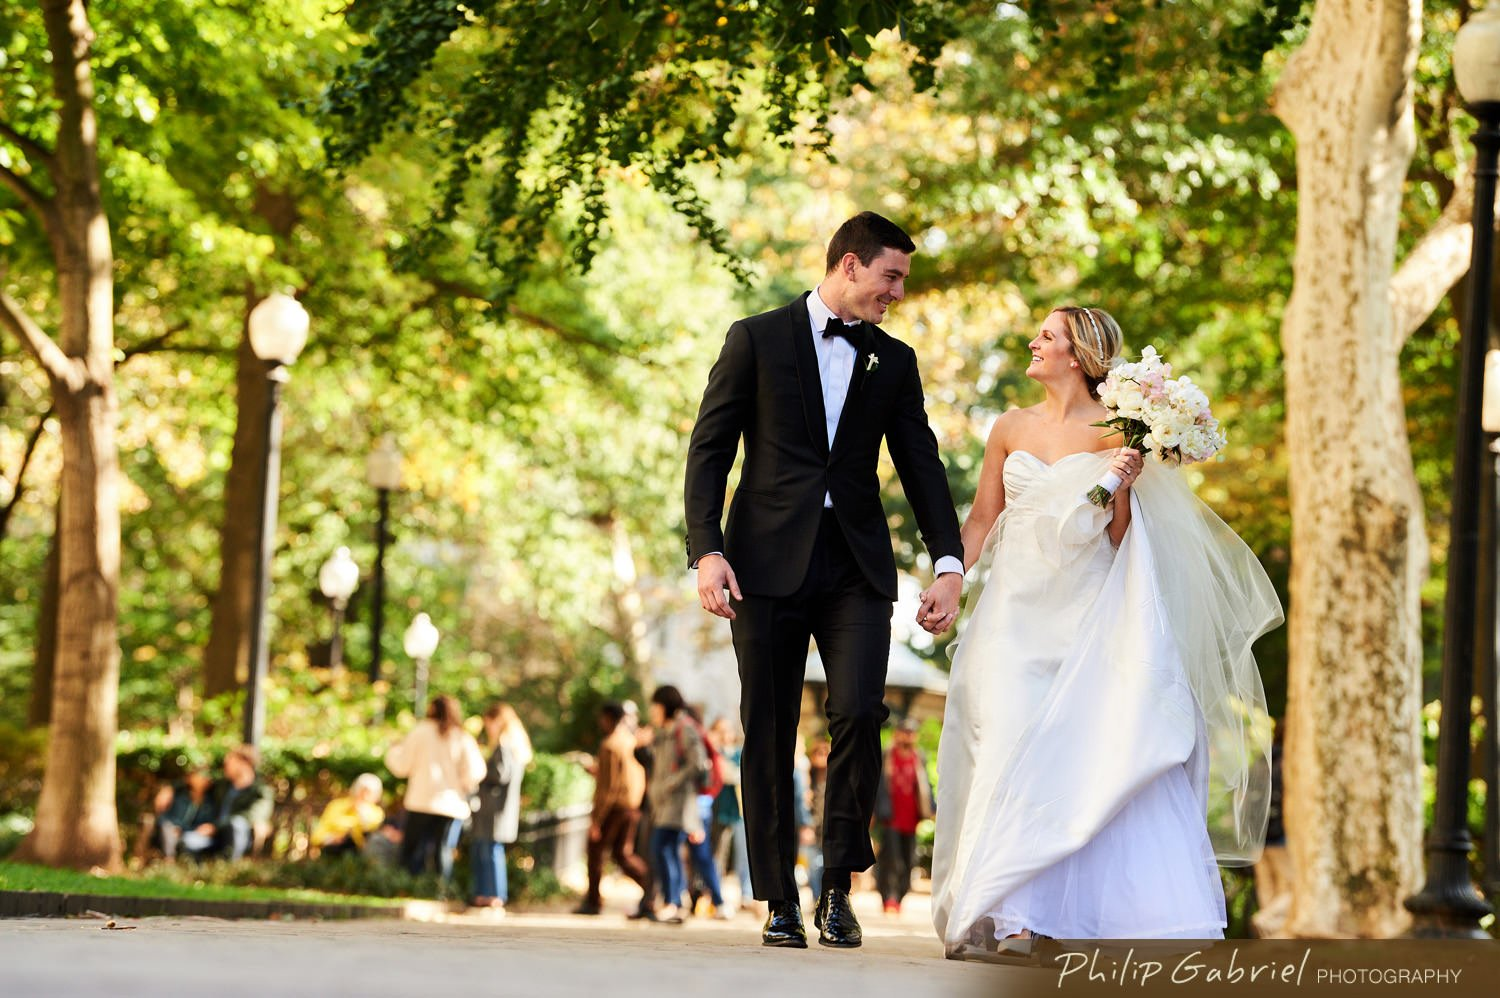 Wedding Photography in Rittenhouse Square Park